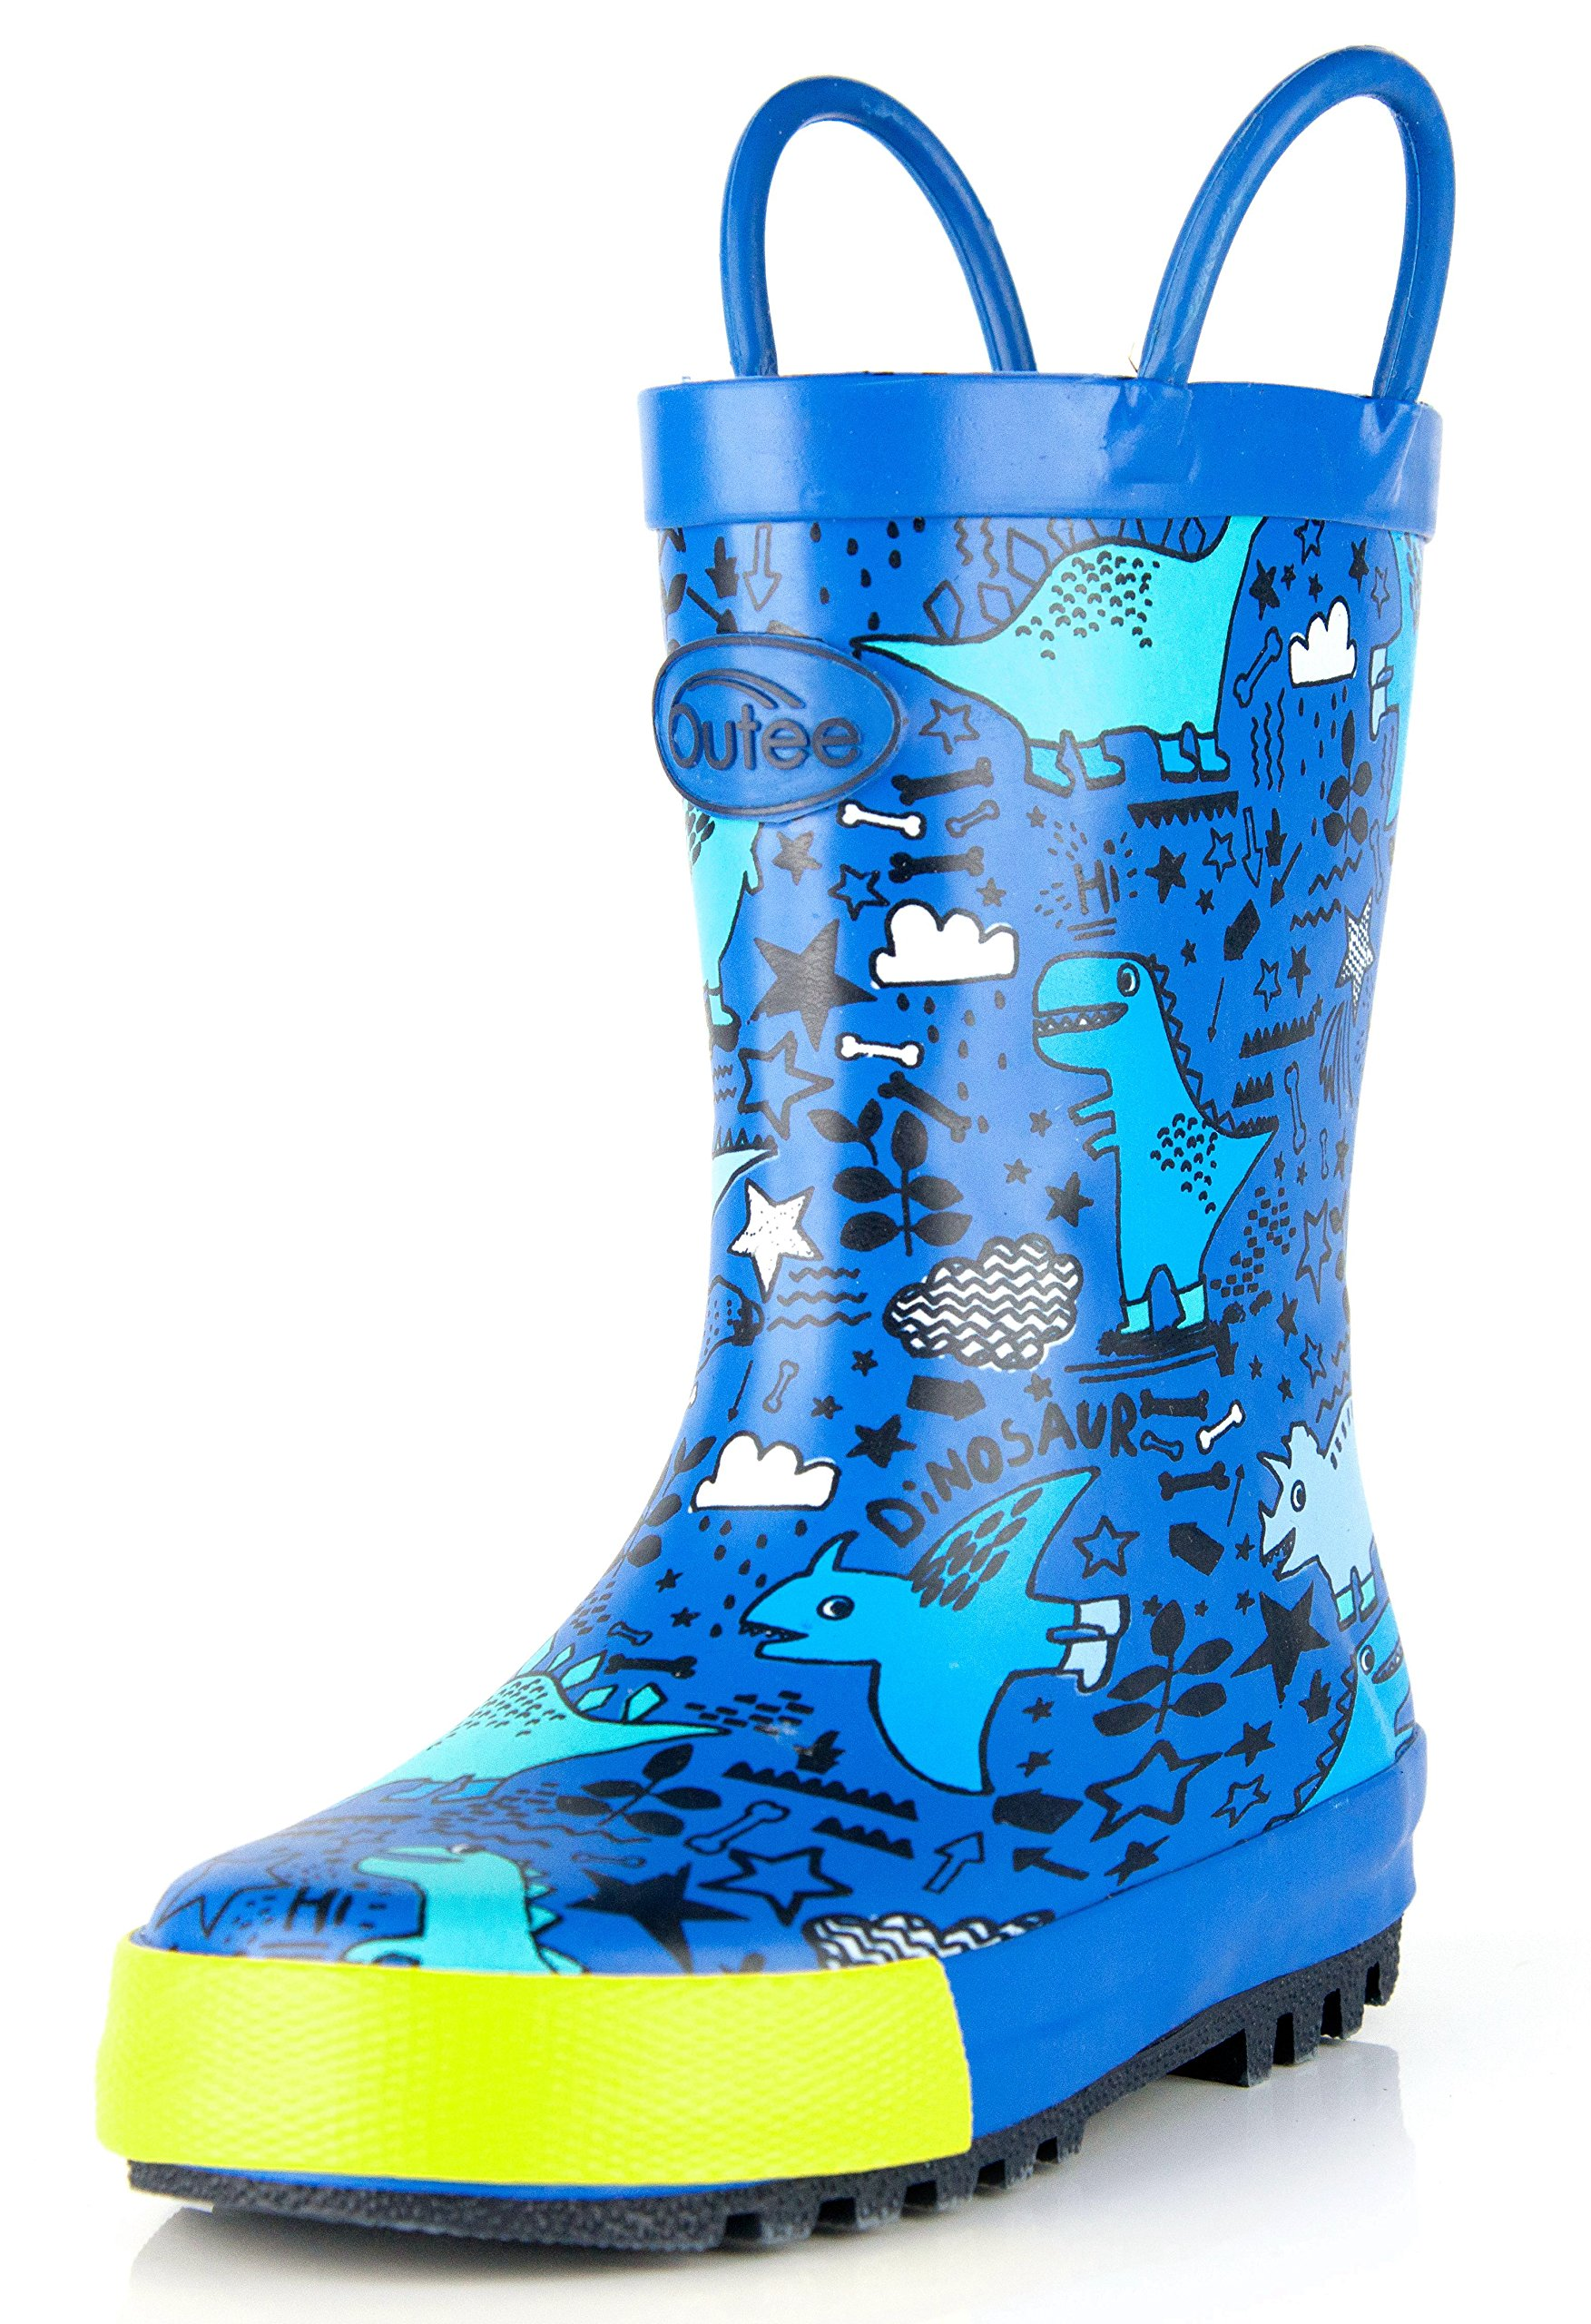 Outee Toddler Boys Kids Rubber Rain Boots Blue Waterproof Shoes Dinosaur Cute Print with Easy-On Handles Classic Comfortable Removable Insoles Anti-Slippery Durable Sole with Grip (Size 10,Blue)